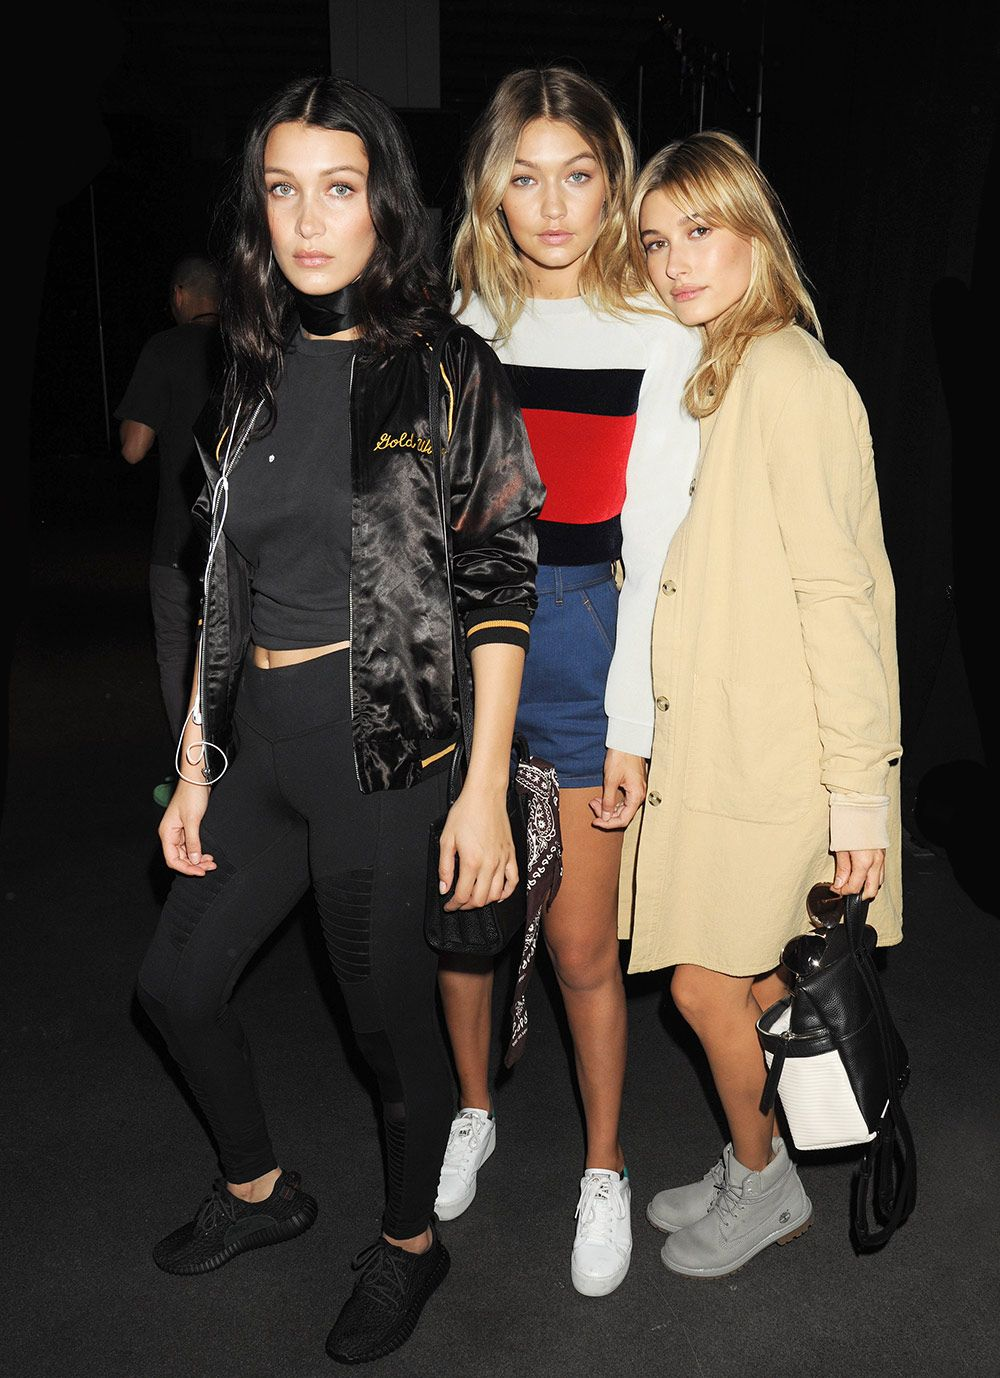 Celebrity offsprings turned models, Bella and Gigi Hadid, with Hailey Baldwin